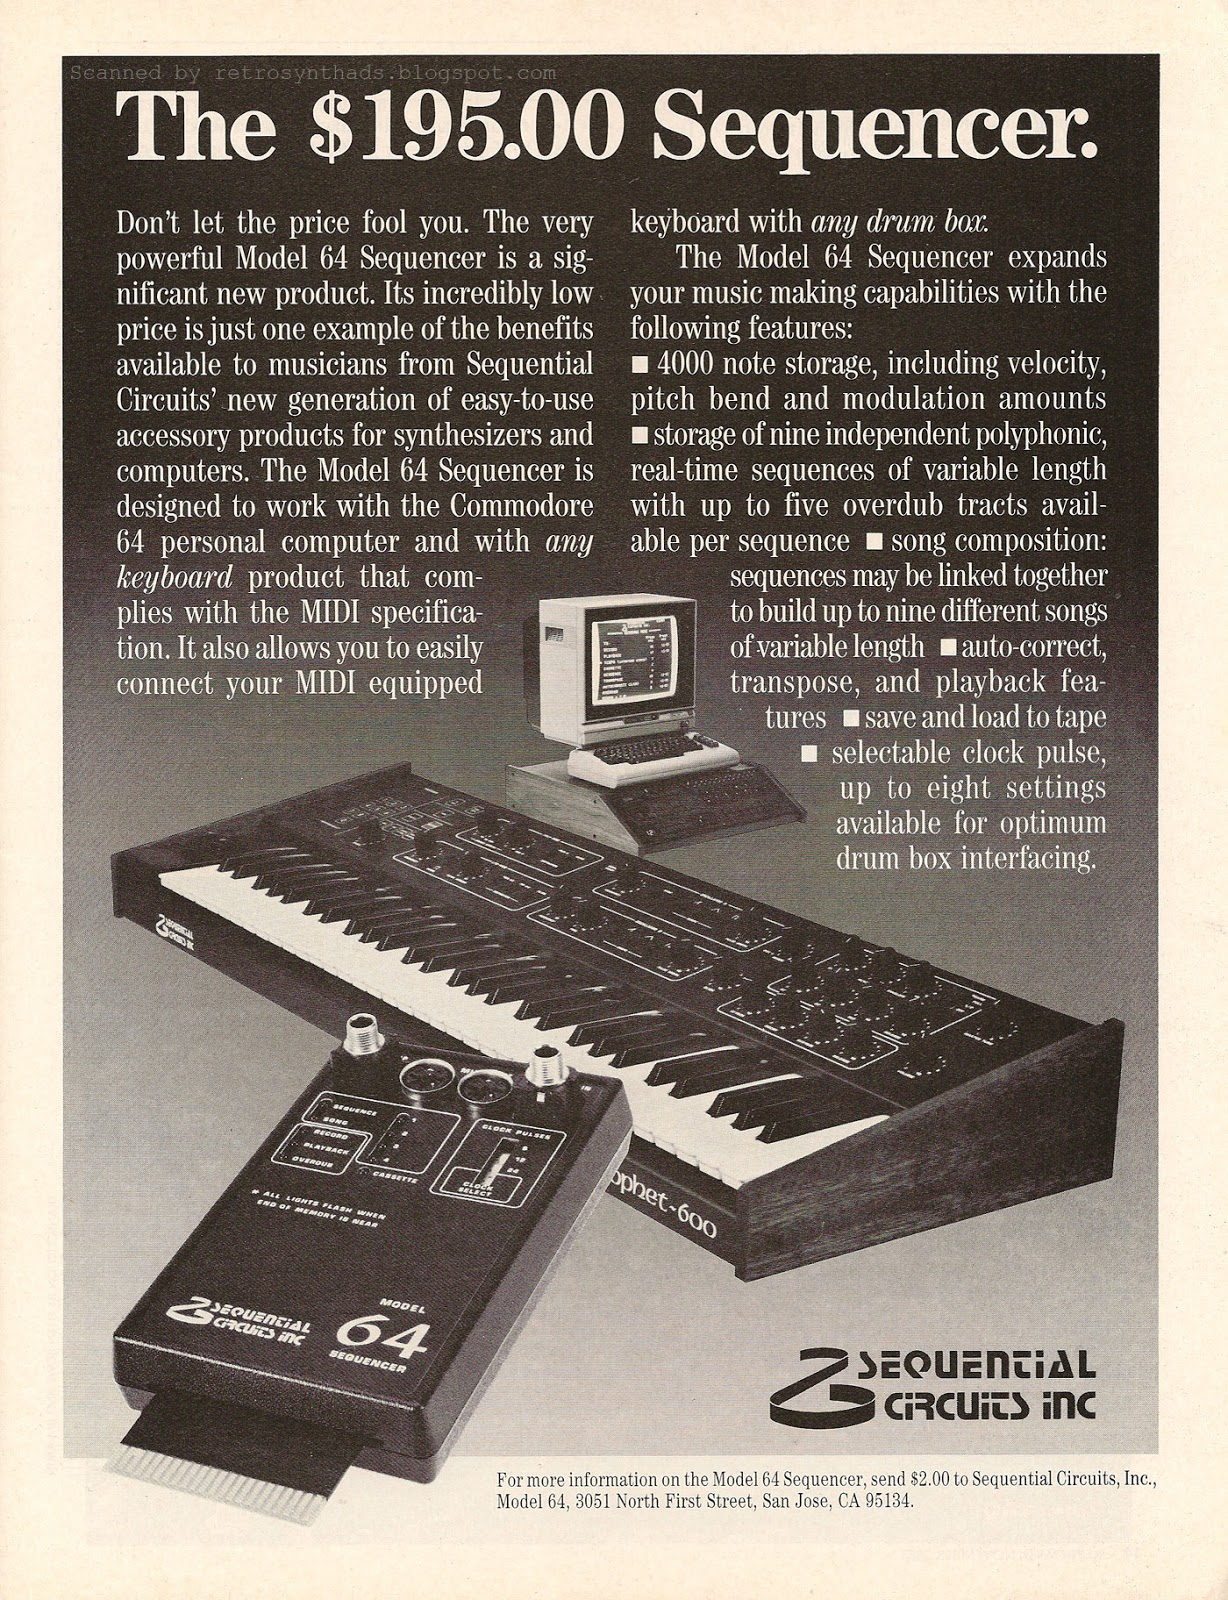 retro synth ads sequential circuits inc model 64 sequencer the sequencer ad. Black Bedroom Furniture Sets. Home Design Ideas